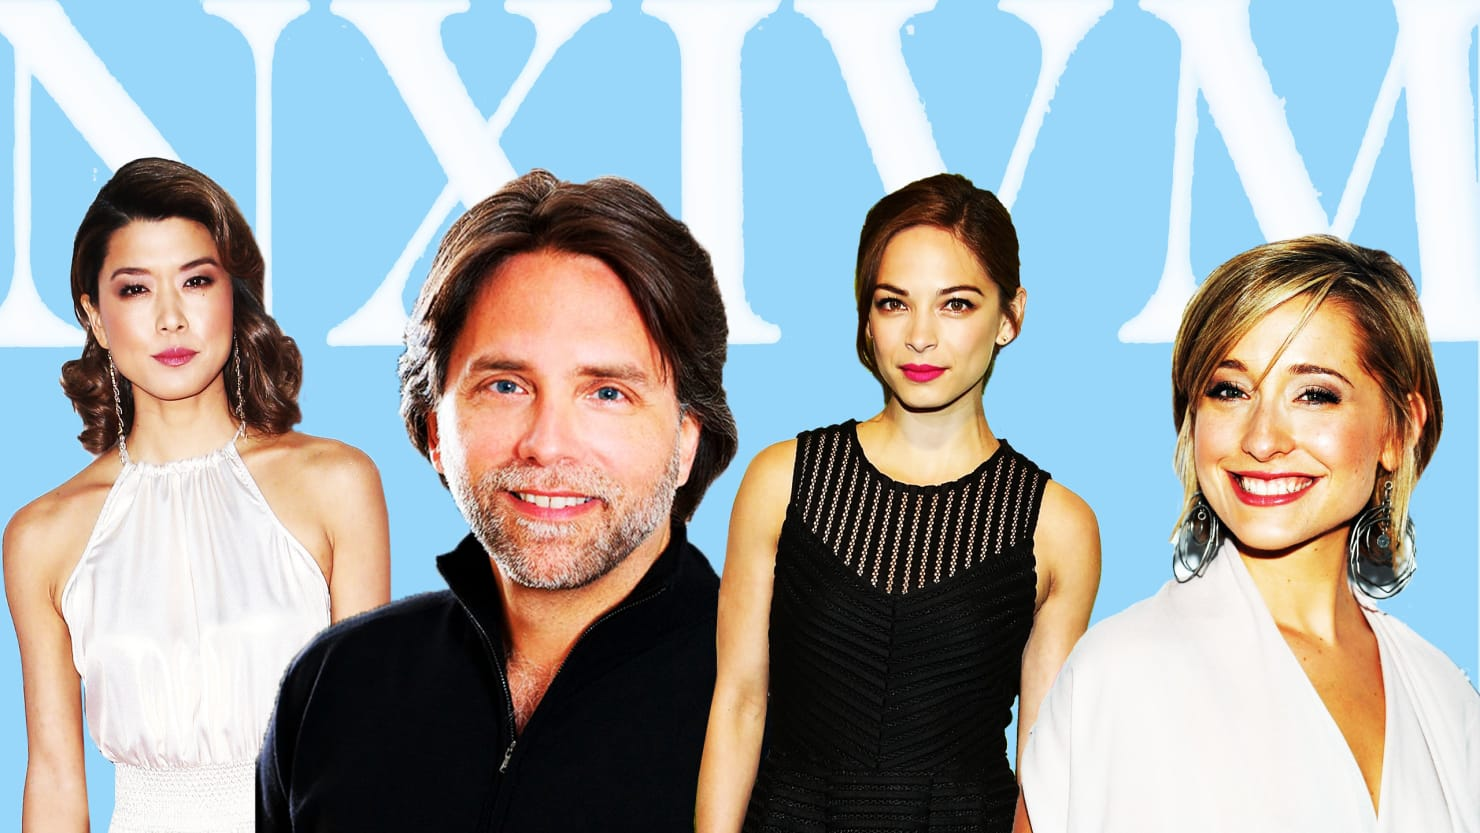 The Hollywood Followers Of Nxivm, A Women-Branding Sex Cult